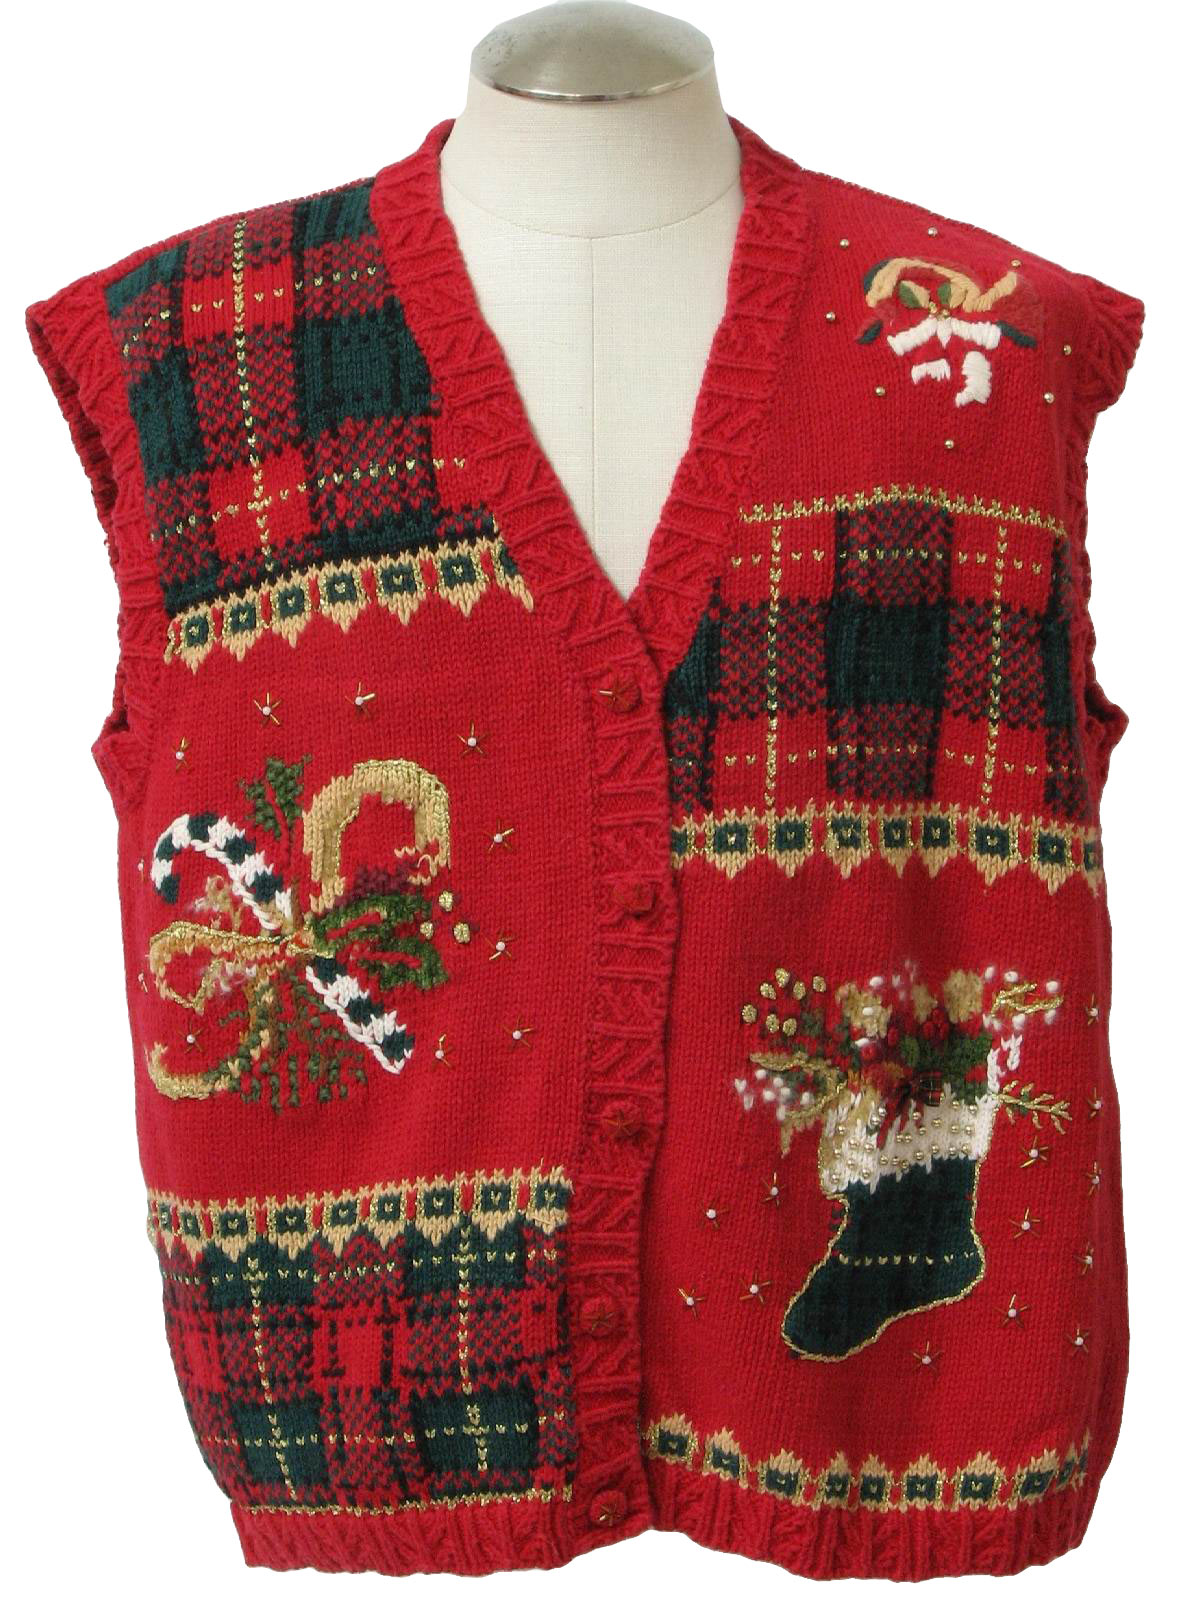 Christmas sweater vest veed neckline with a french horn a candy cane